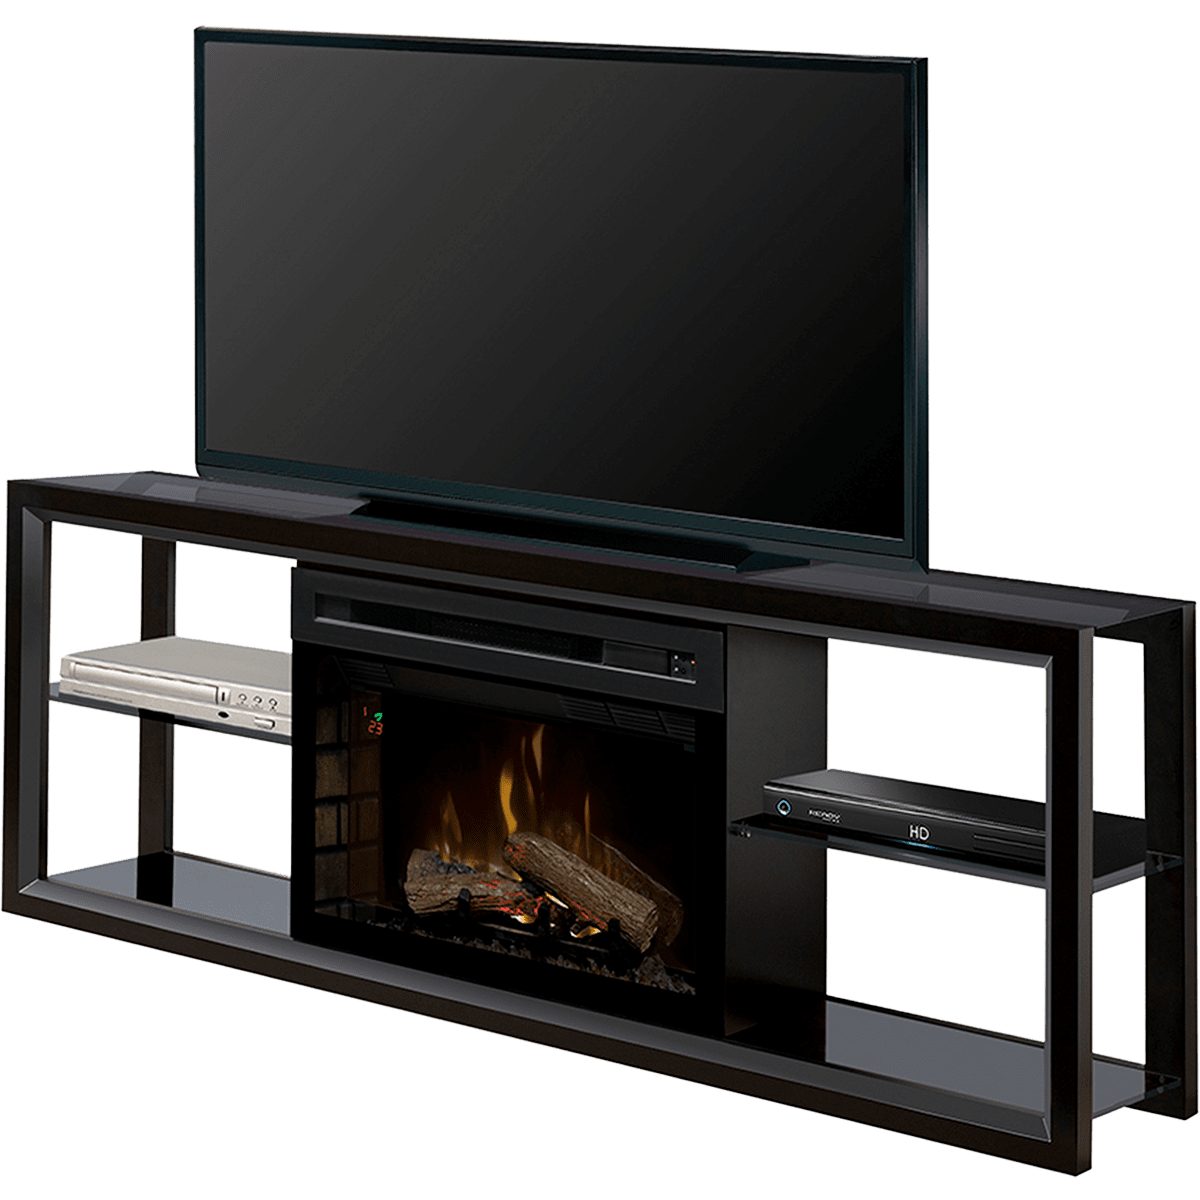 tsumi fireplace stand holly electric elegant unique tv interior design fenton media black of martin